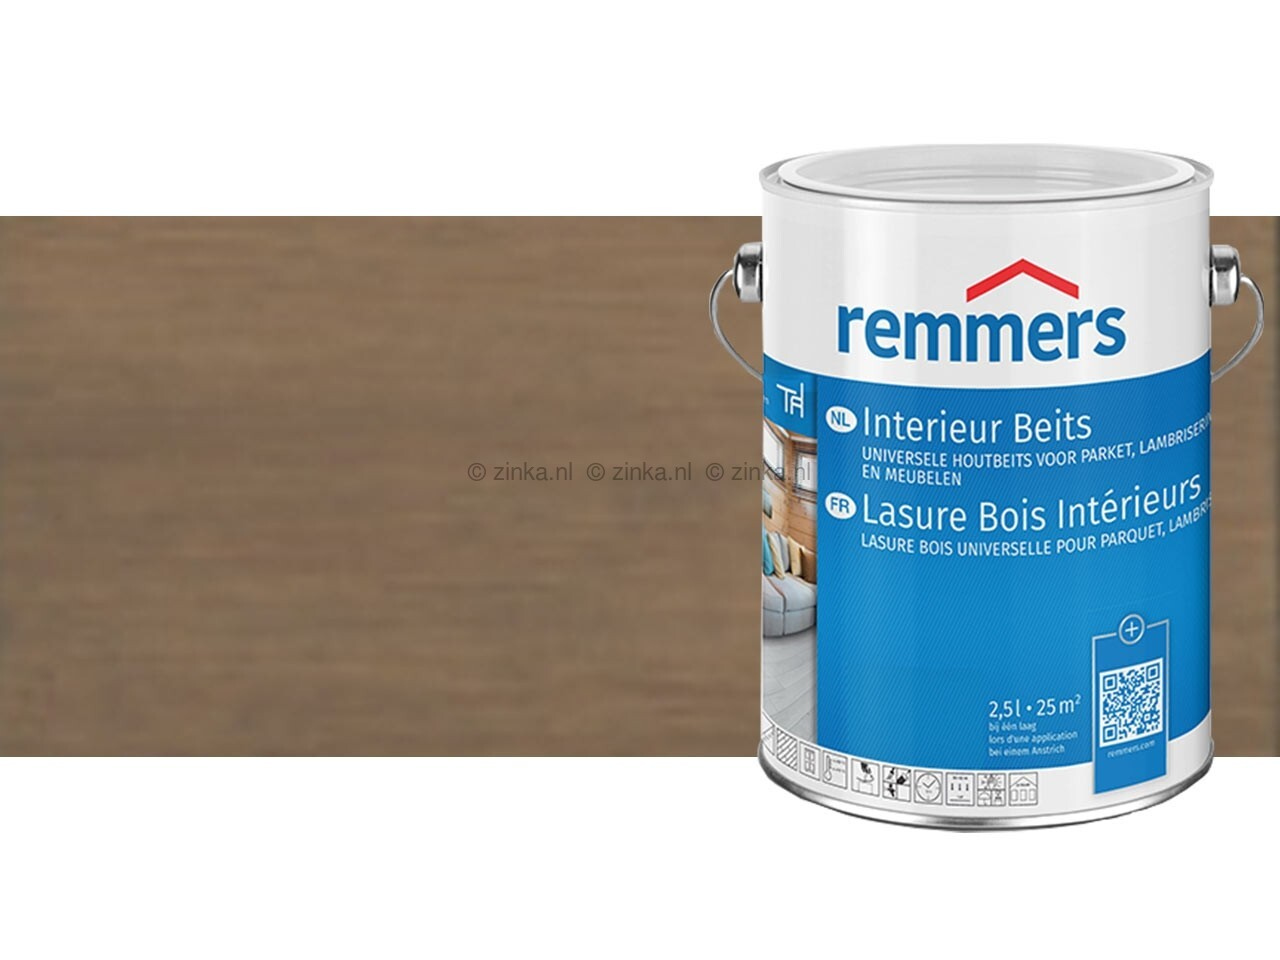 interieur beits remmers